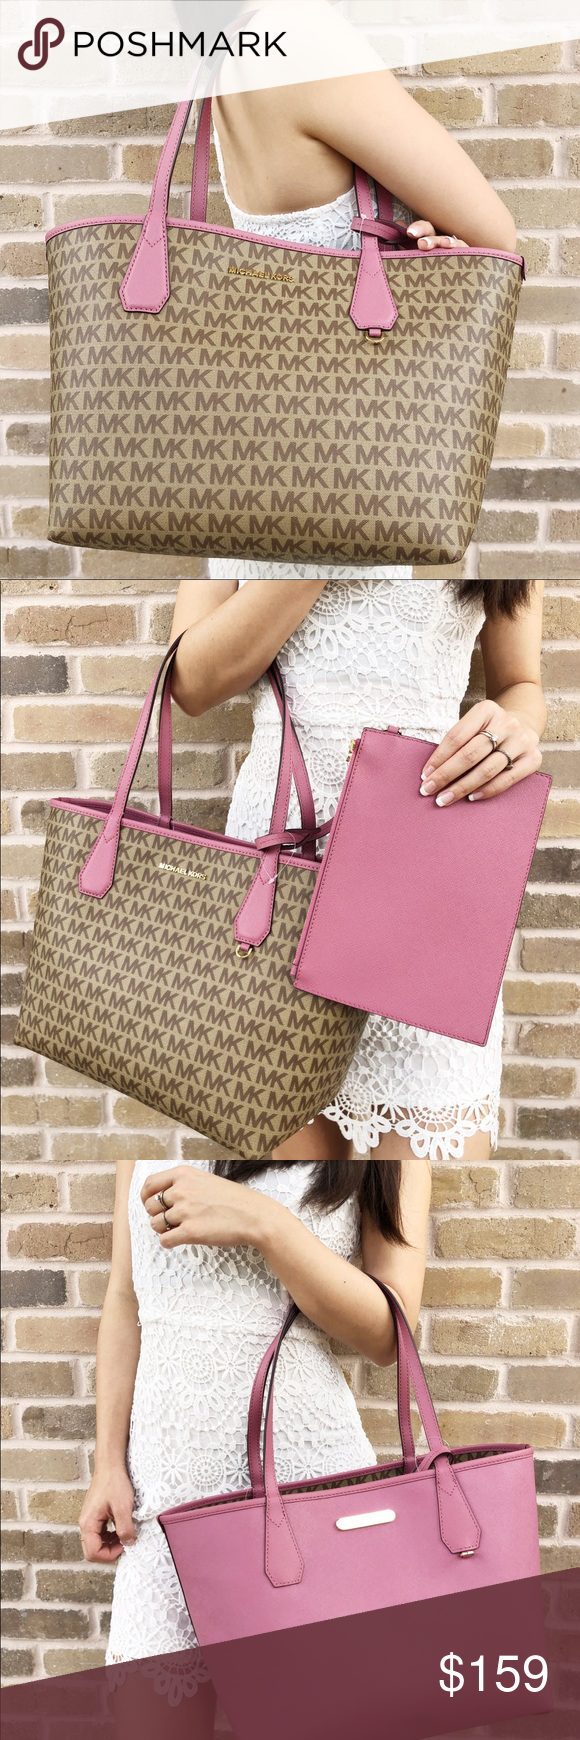 ade350eb66e4a5 NWT Michael Kors candy reversible tote Tulip pink 16